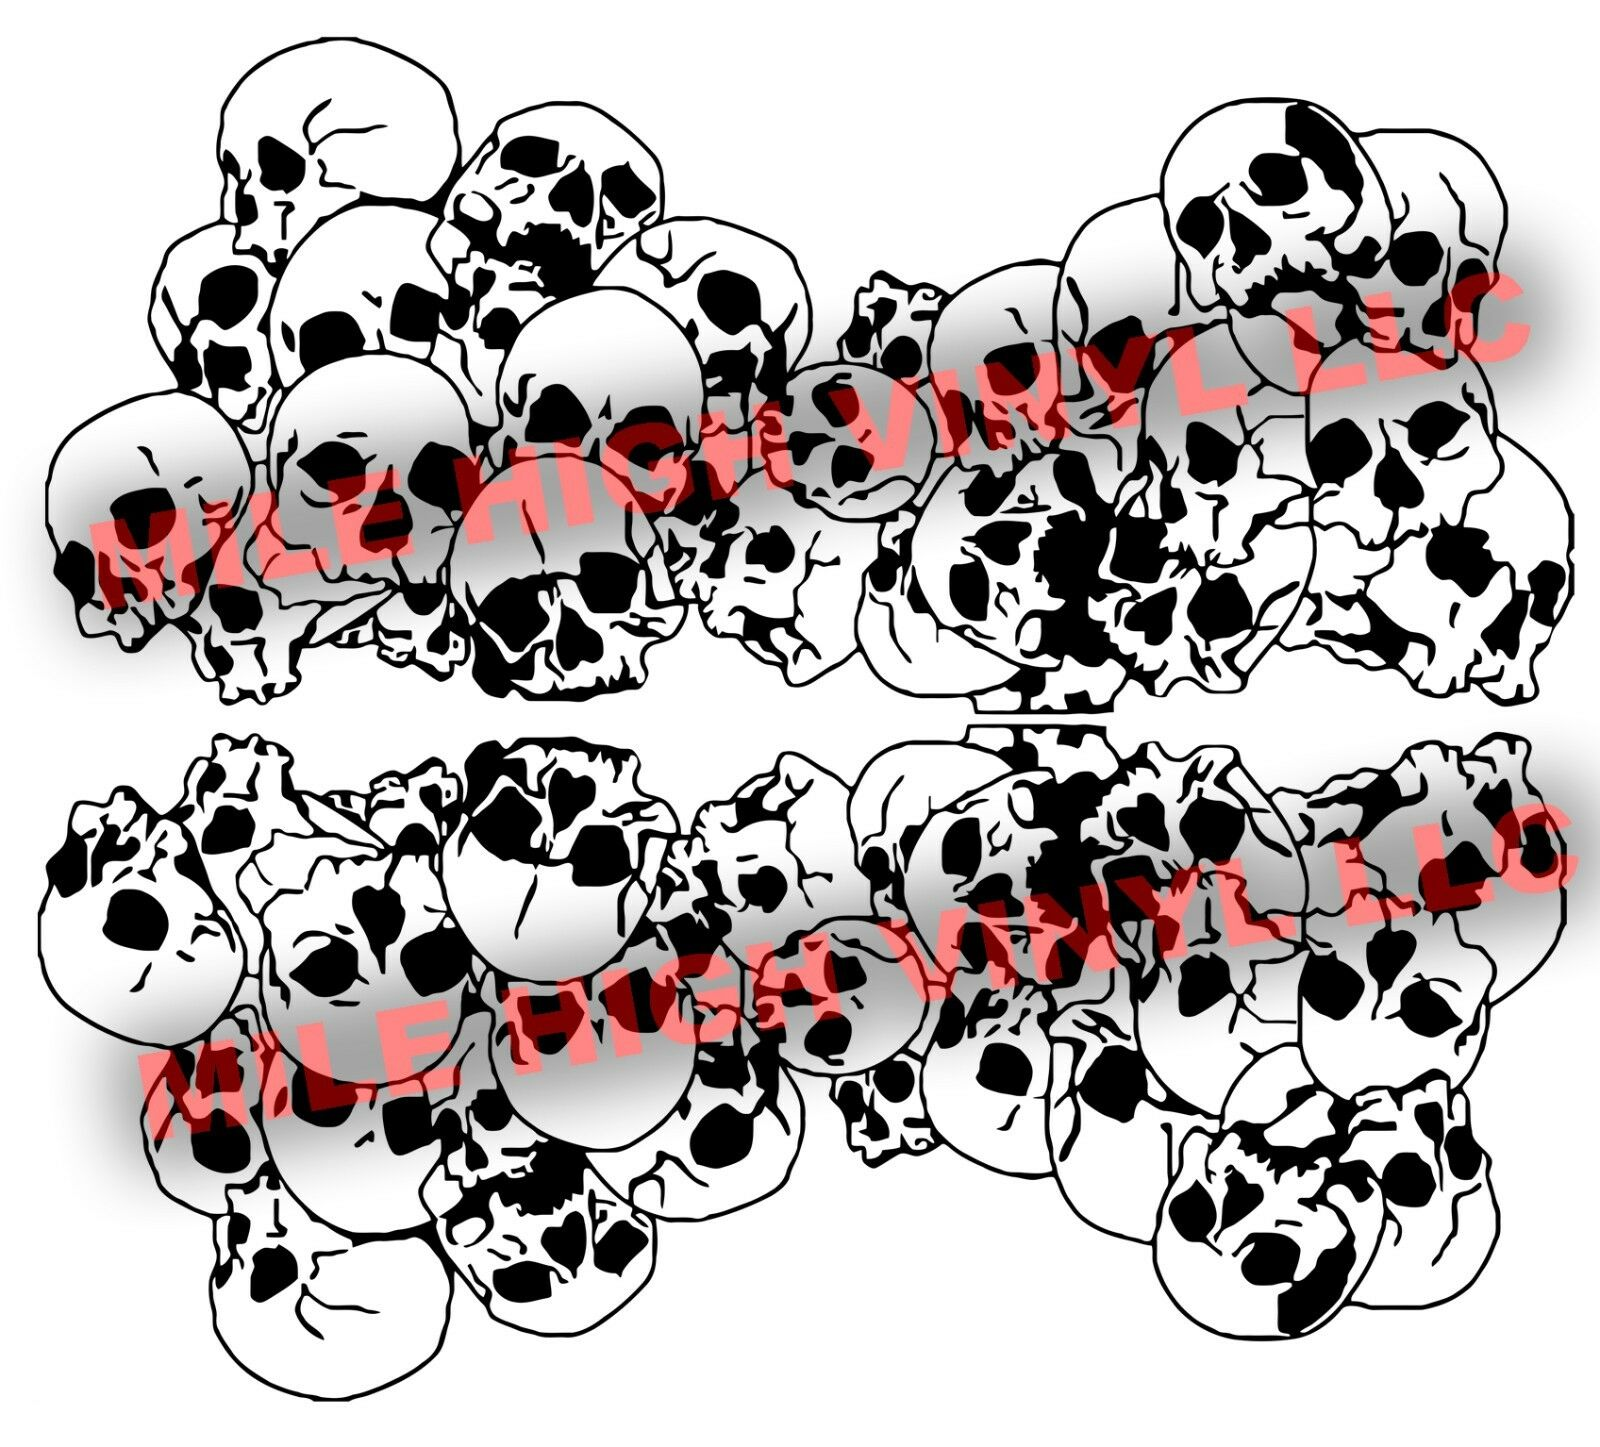 Cerakote duracoat skulls stencil vinyl high heat paint camouflage picture 1 of 2 amipublicfo Choice Image